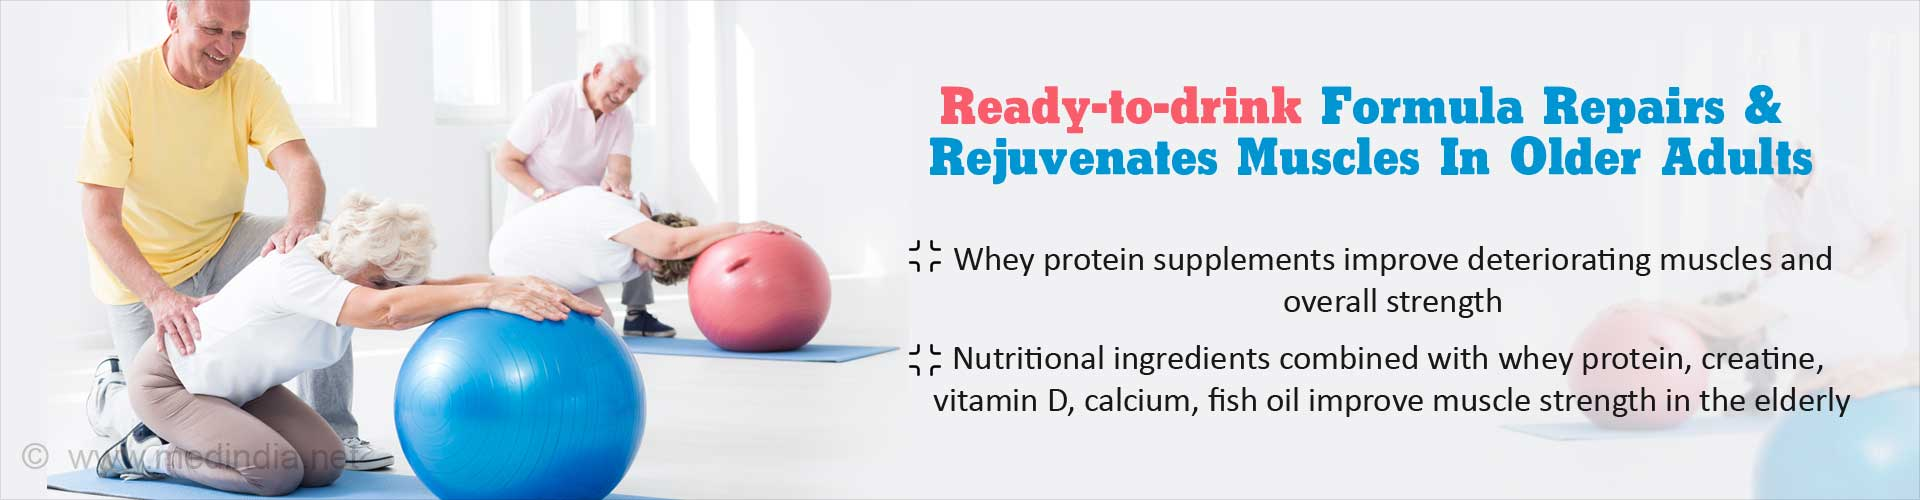 Whey Protein Supplement Repairs, Rejuvenates Muscles In The Elderly